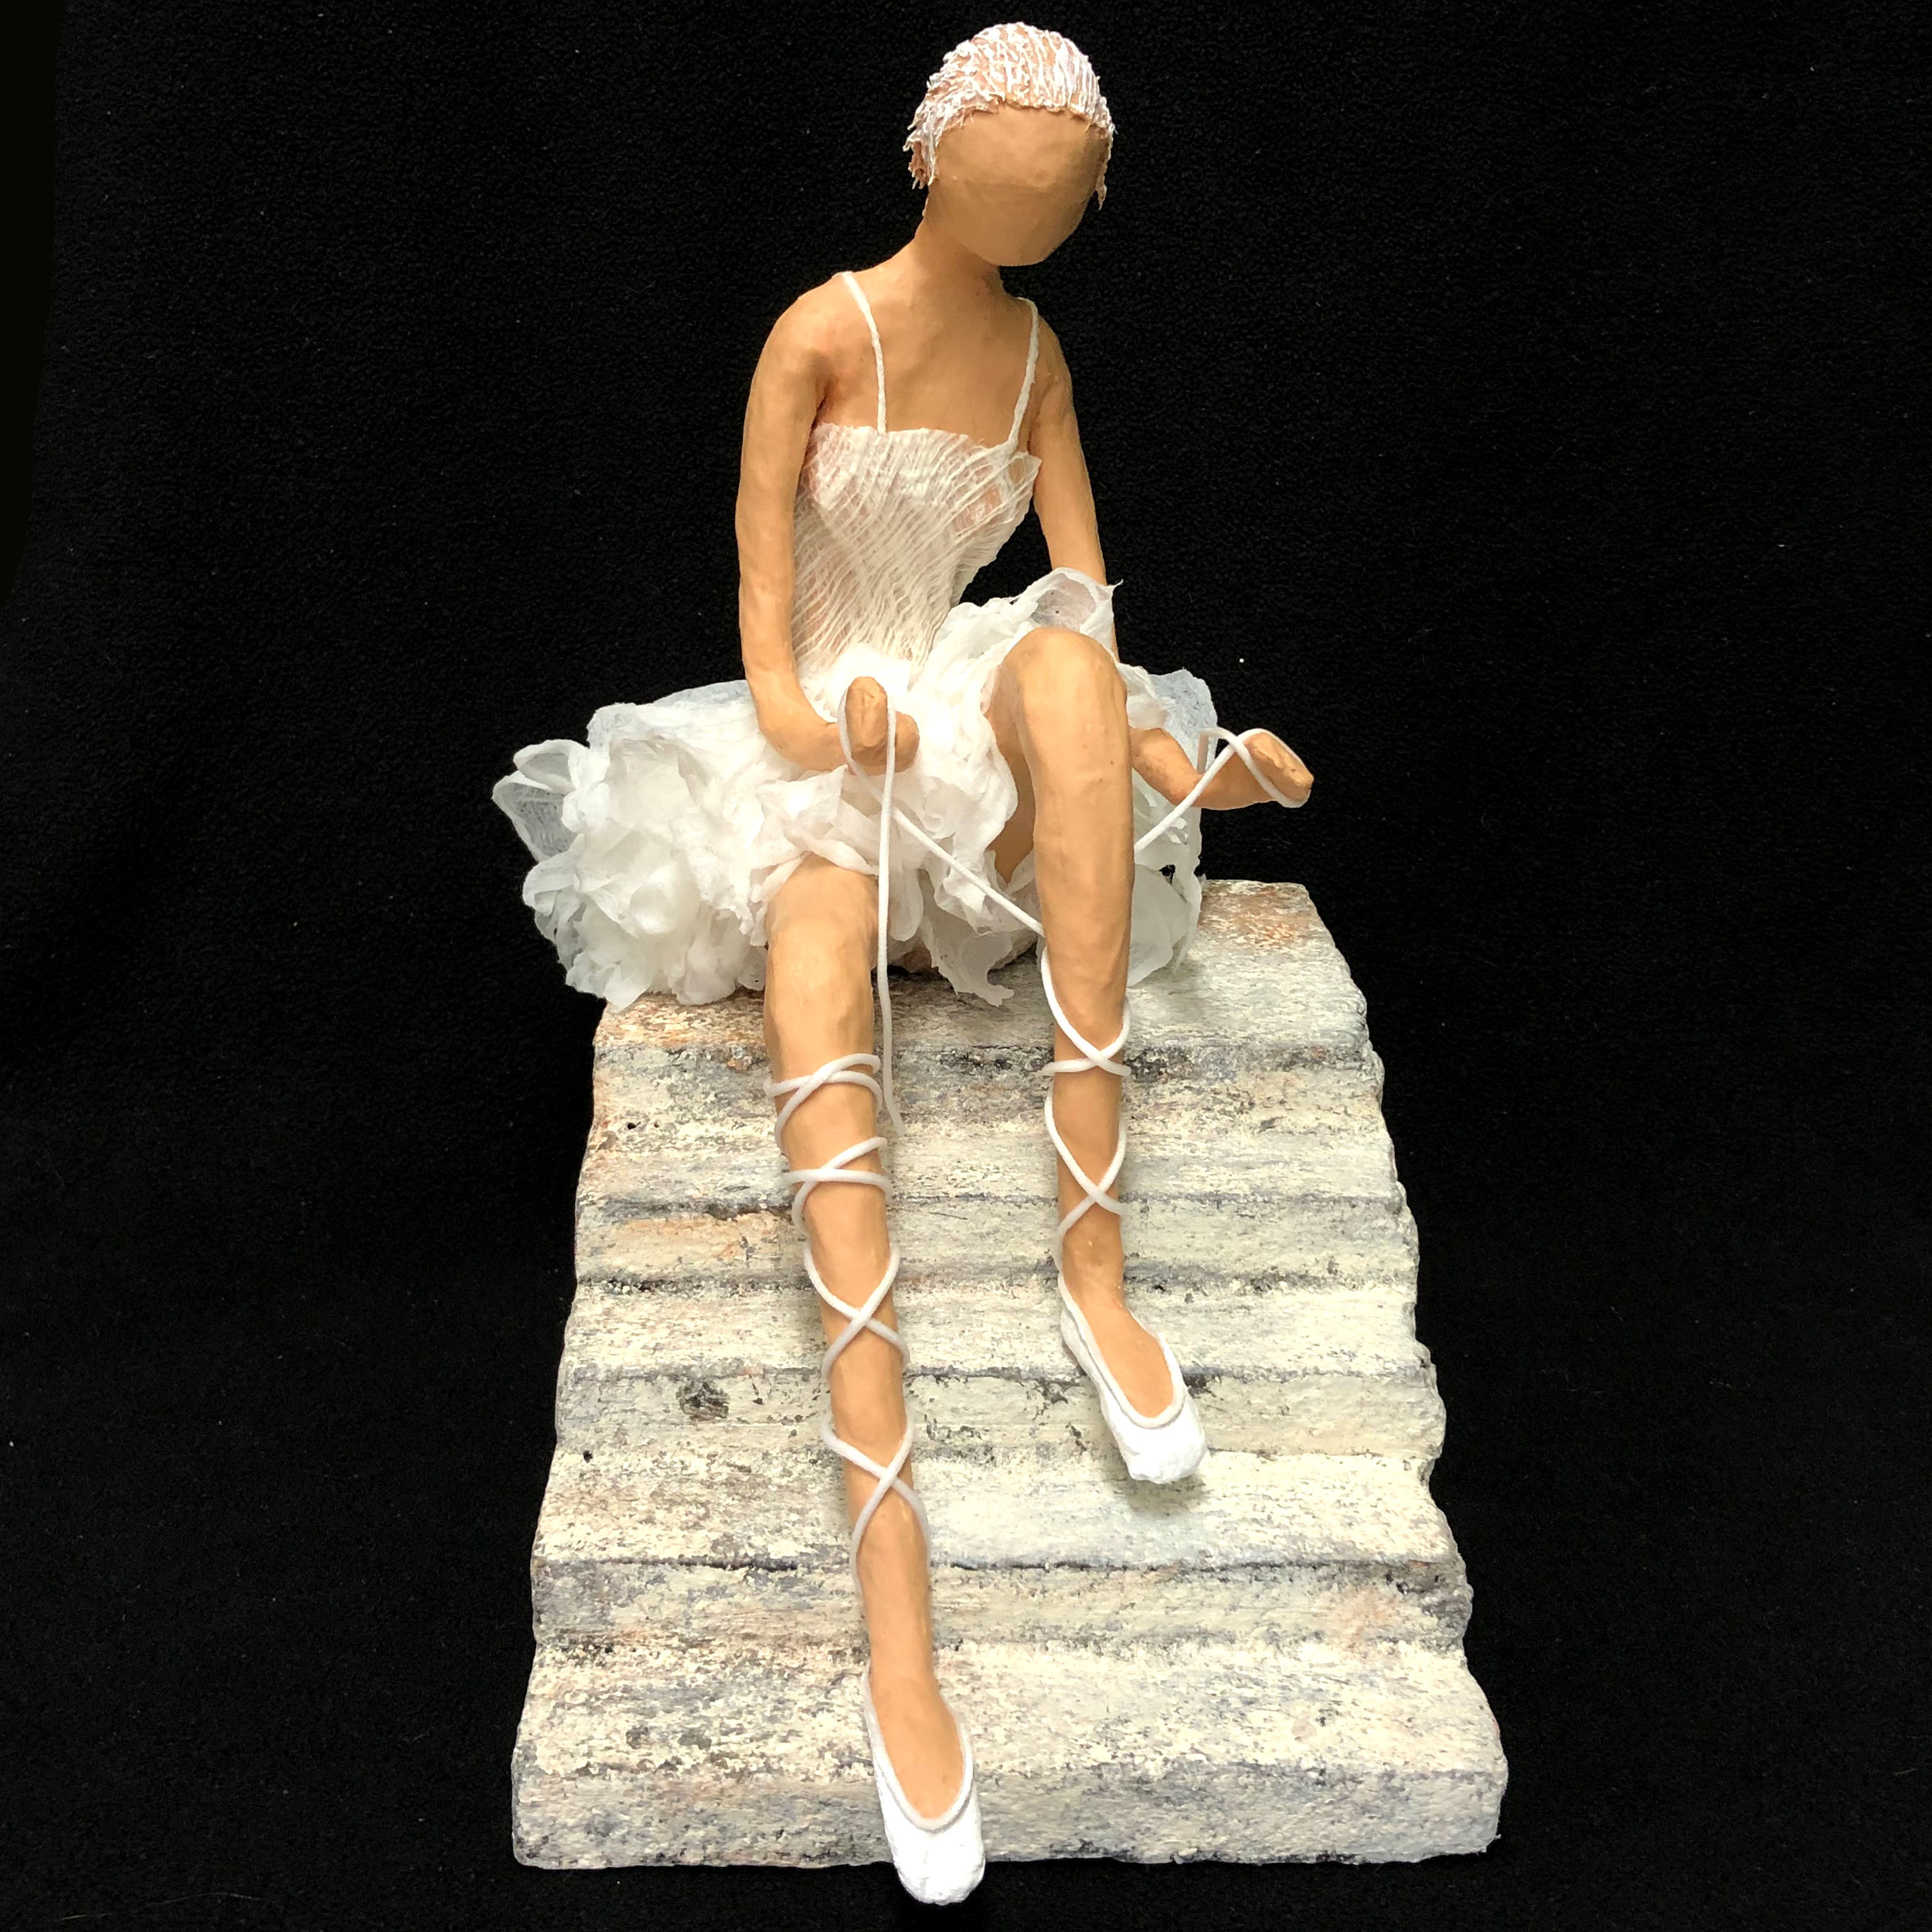 How to Make a Ballerina Sculpture in Fabric using Fabric Hardener (Paverpol)